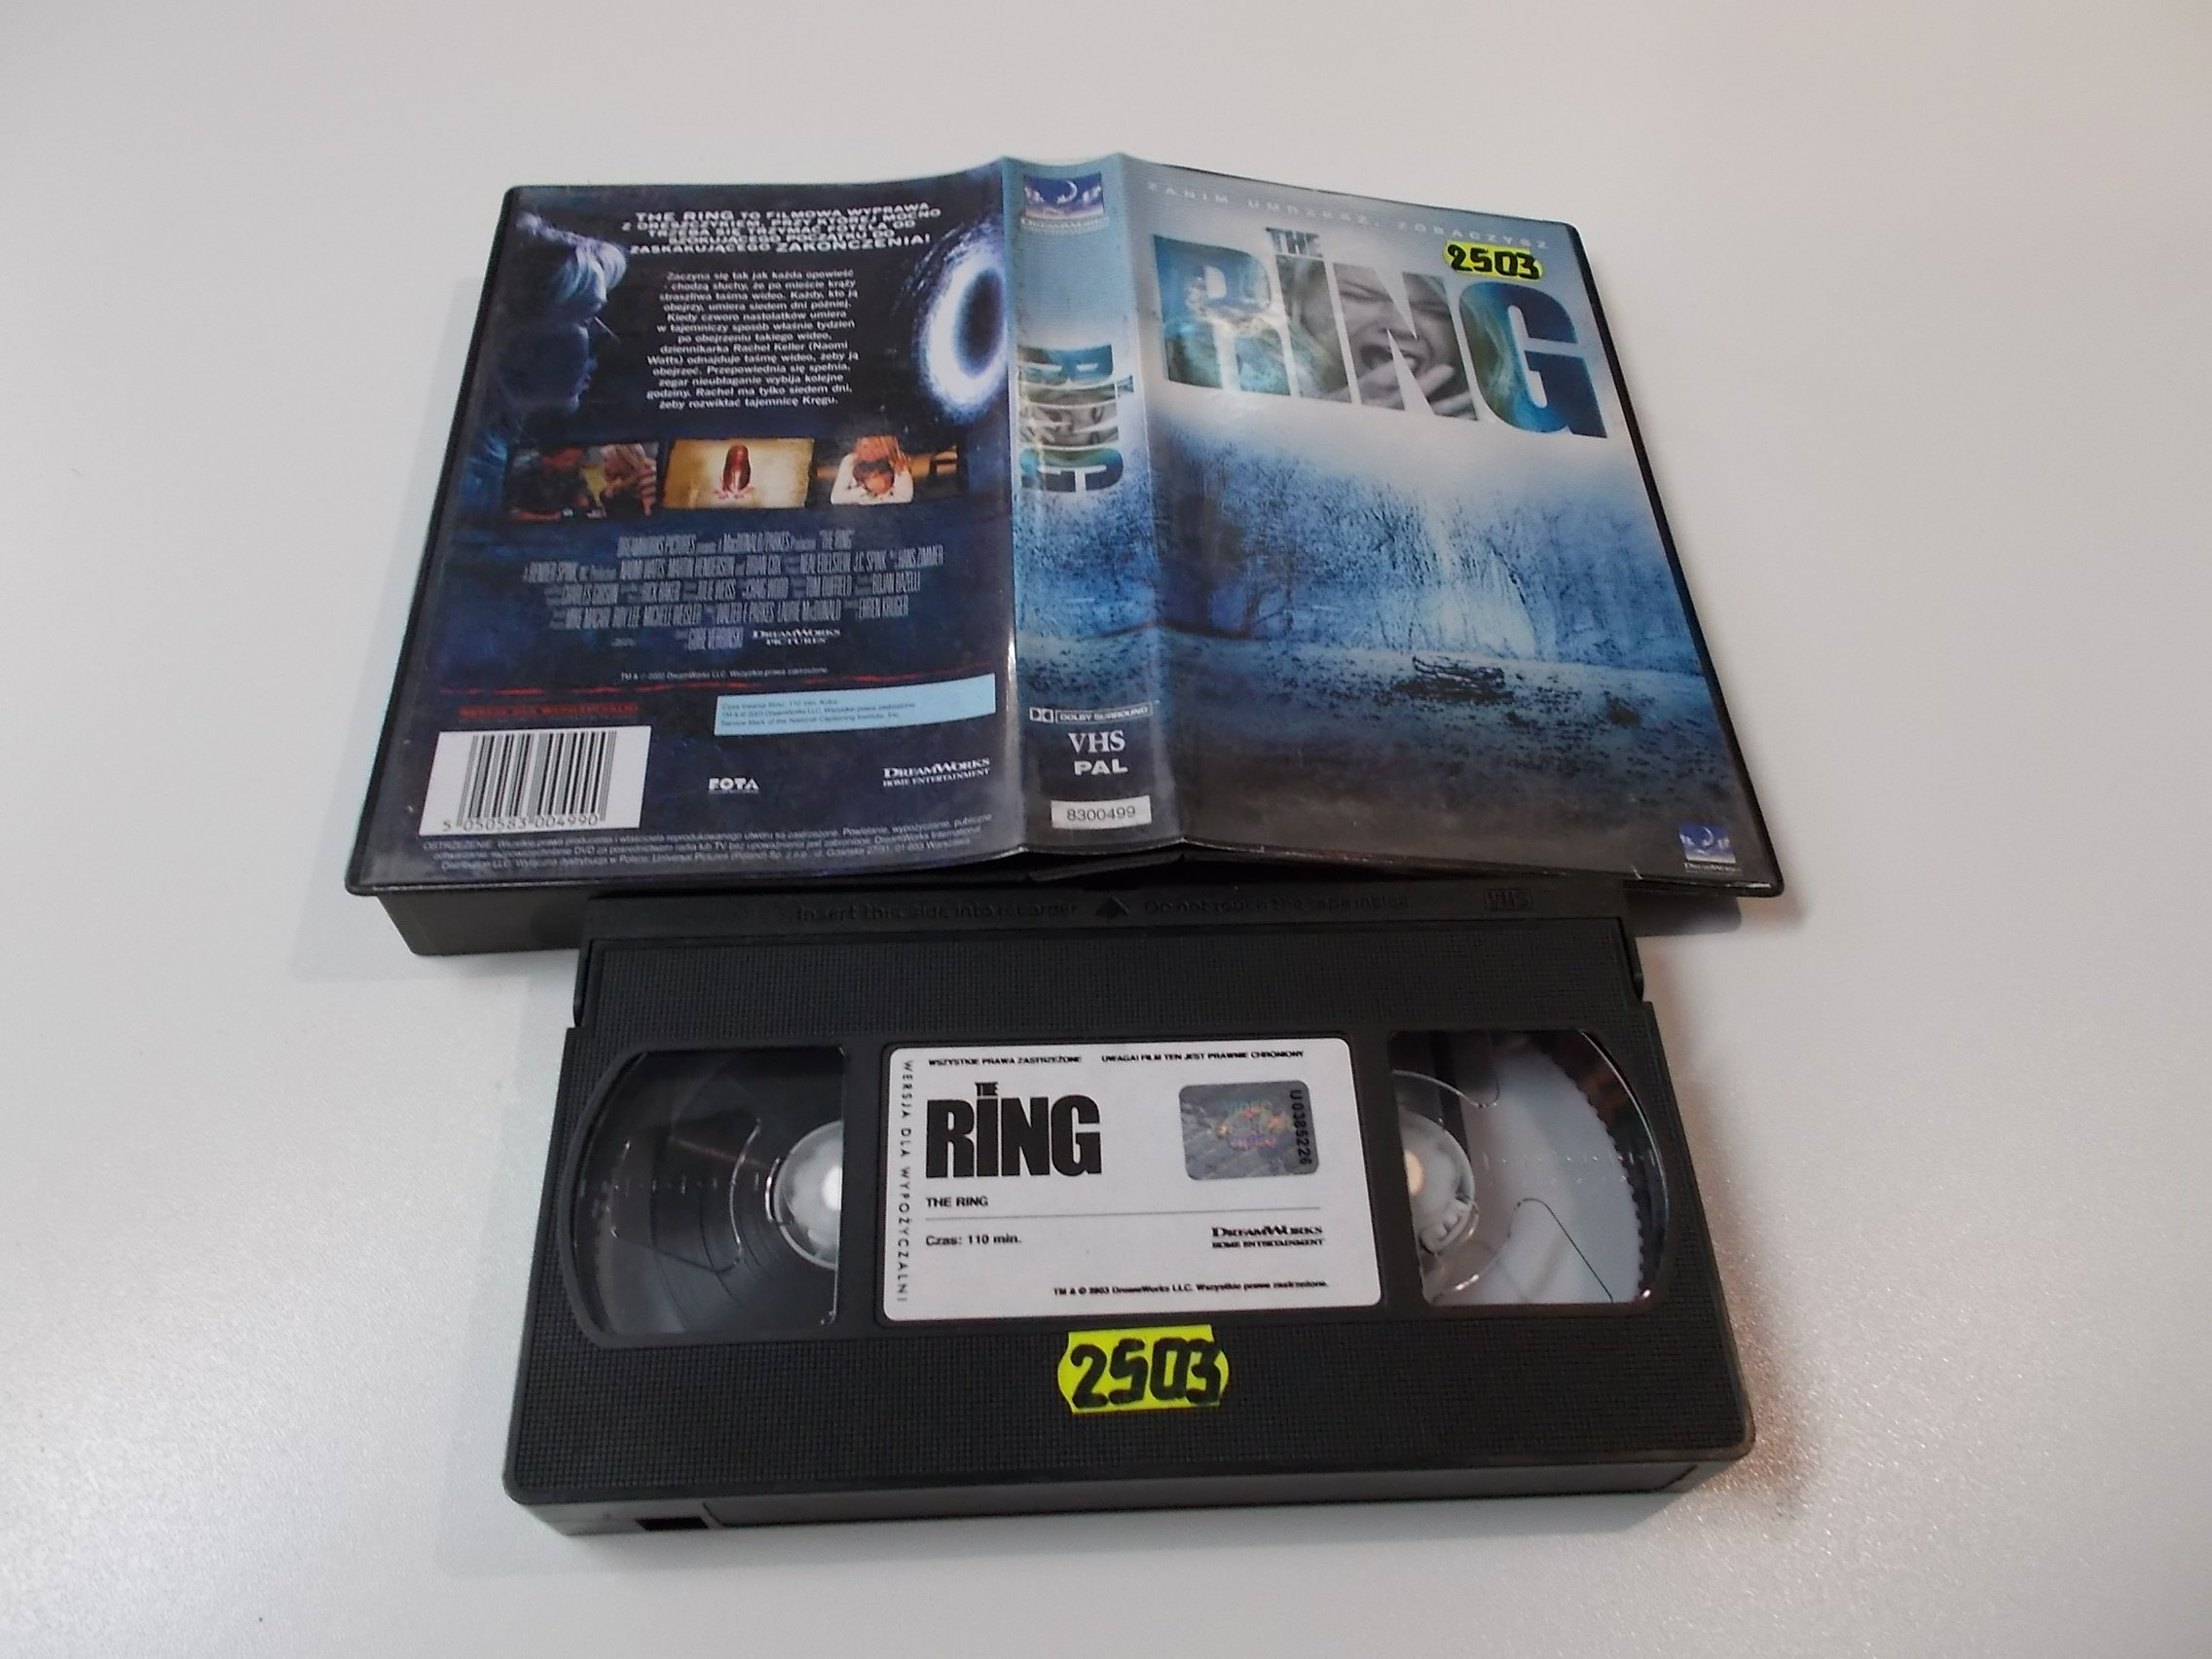 RING - Kaseta Video VHS - Opole 1571